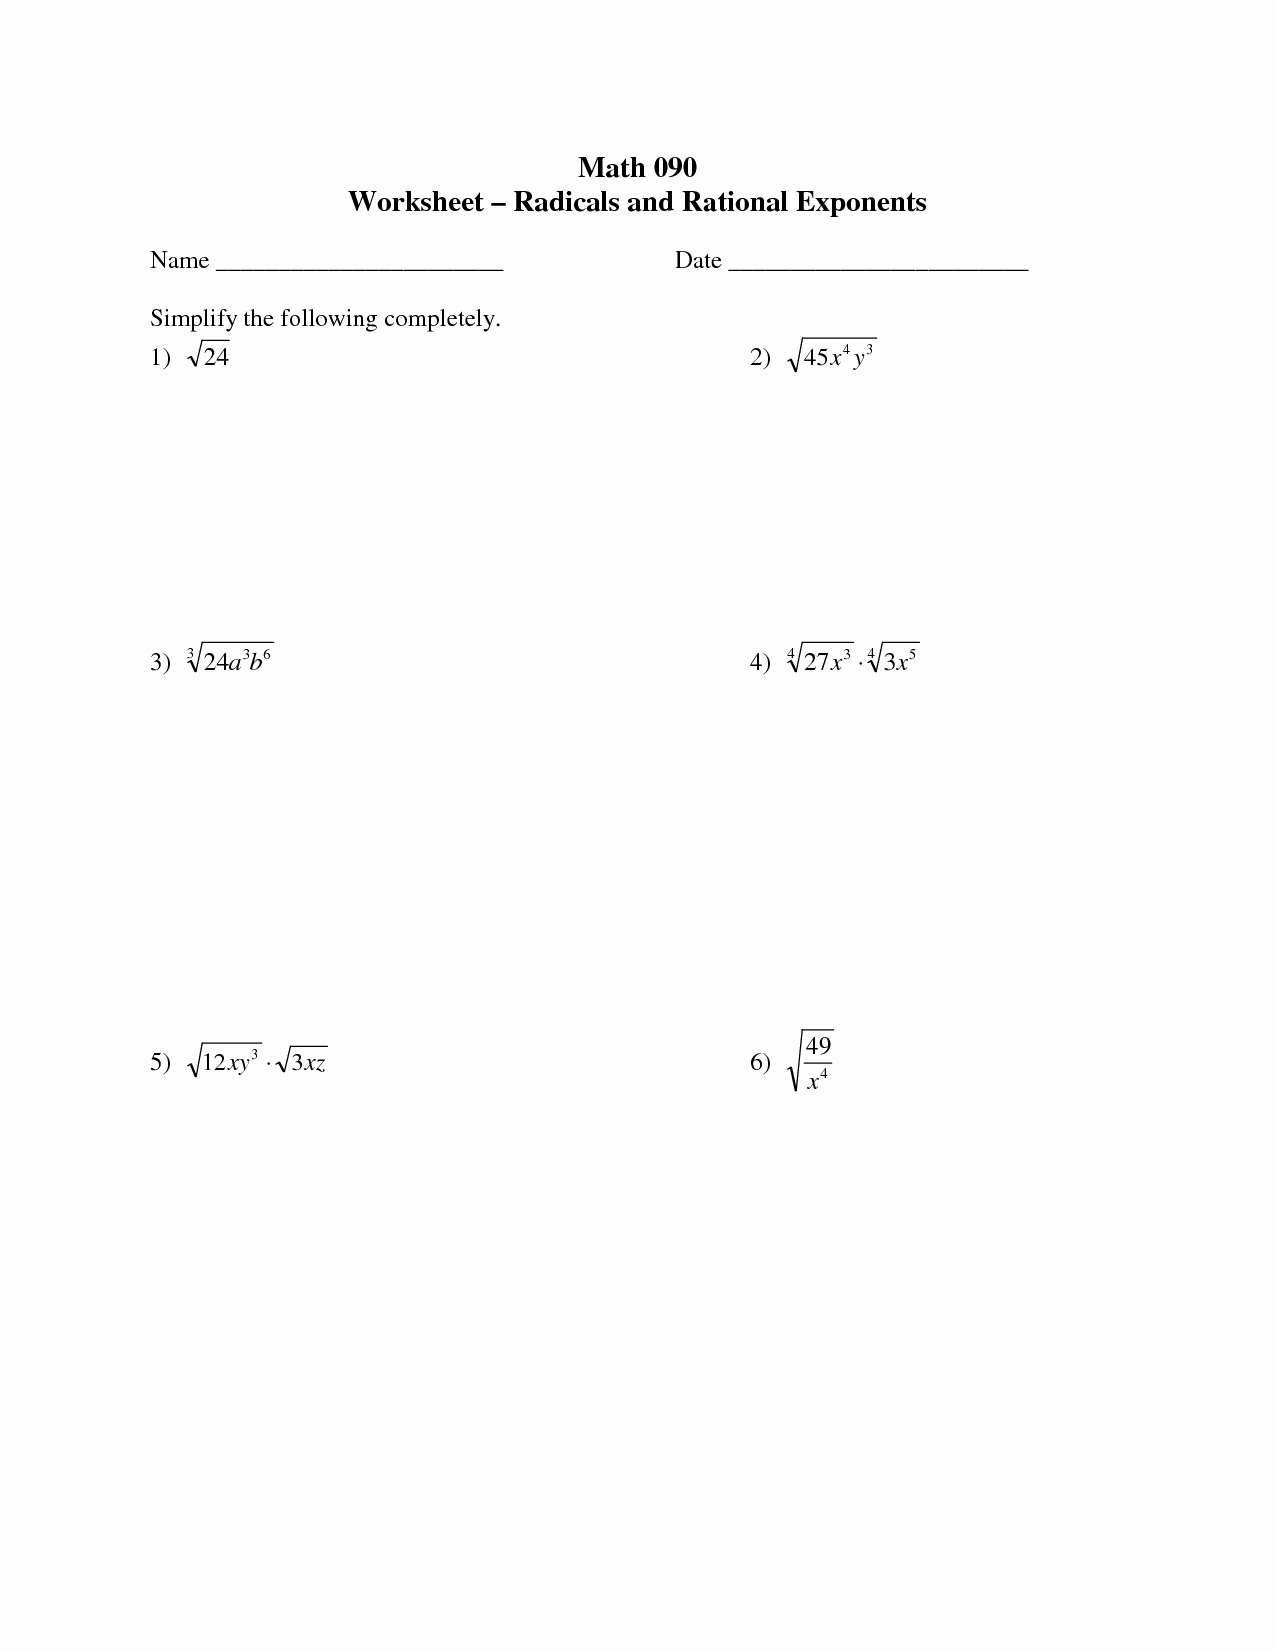 Simplifying Radicals Worksheet Algebra 1 Fresh 17 Best Of Algebra 1 Radicals Worksheet 7th Grade